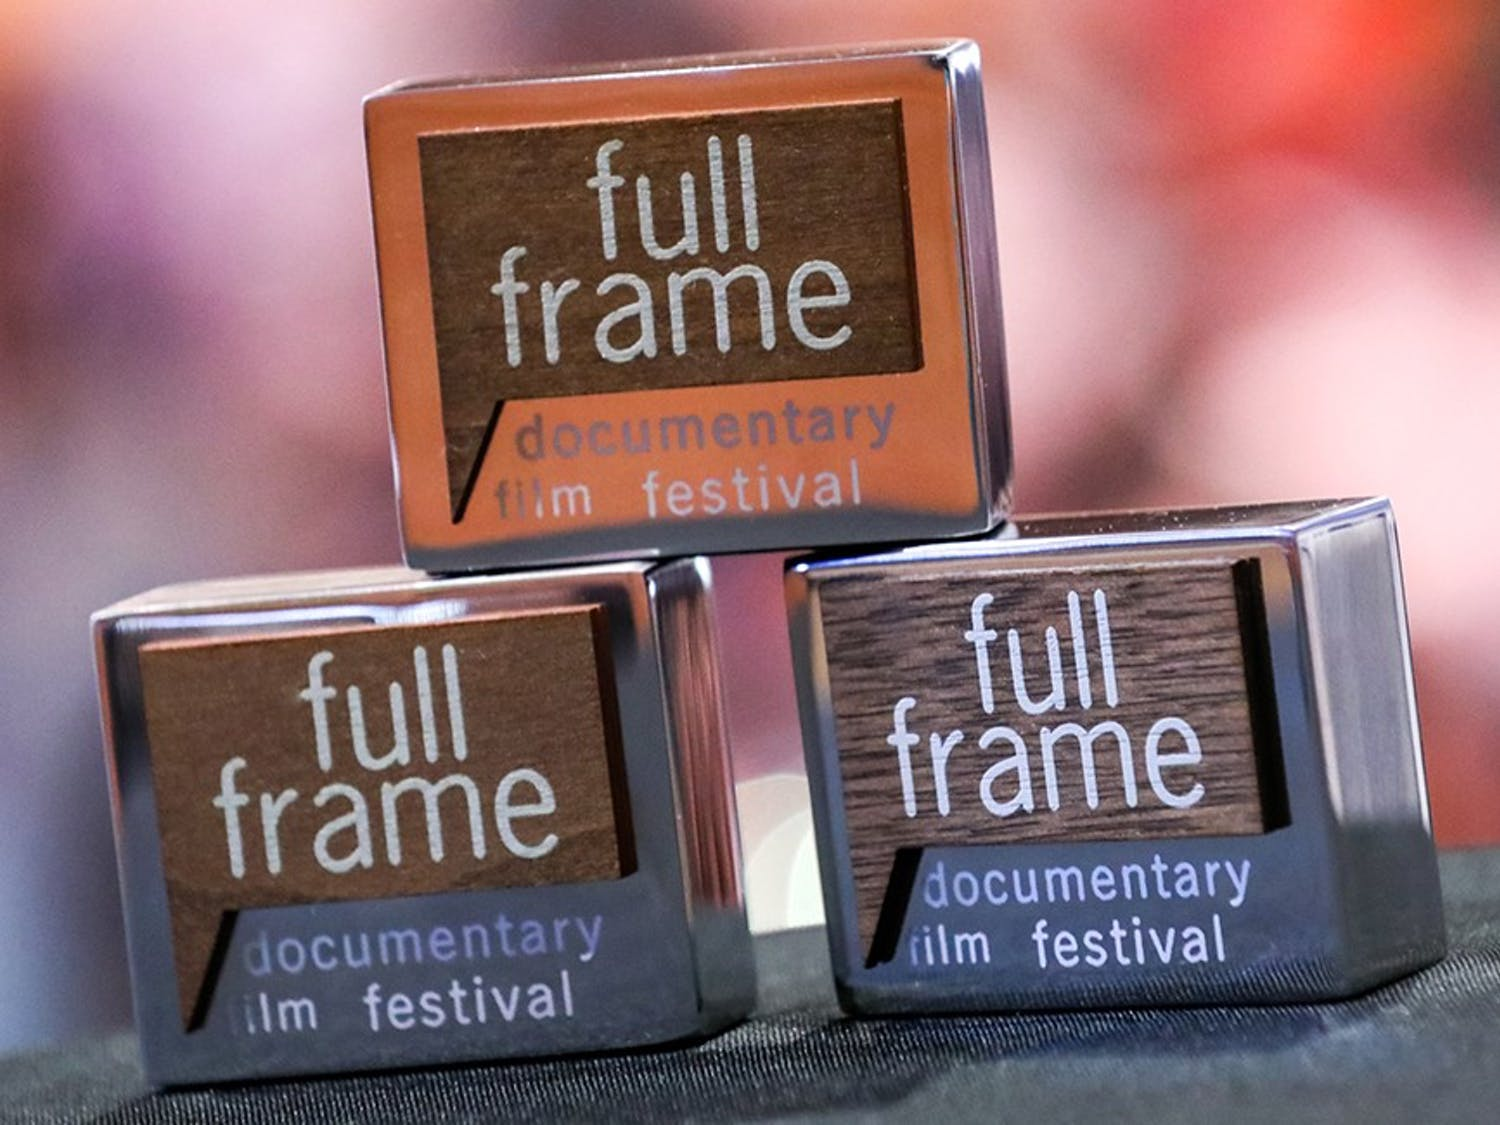 This year's Full Frame Documentary Film Festival, which is held annually in Durham, N.C., was cancelled amid concerns of spreading COVID-19.